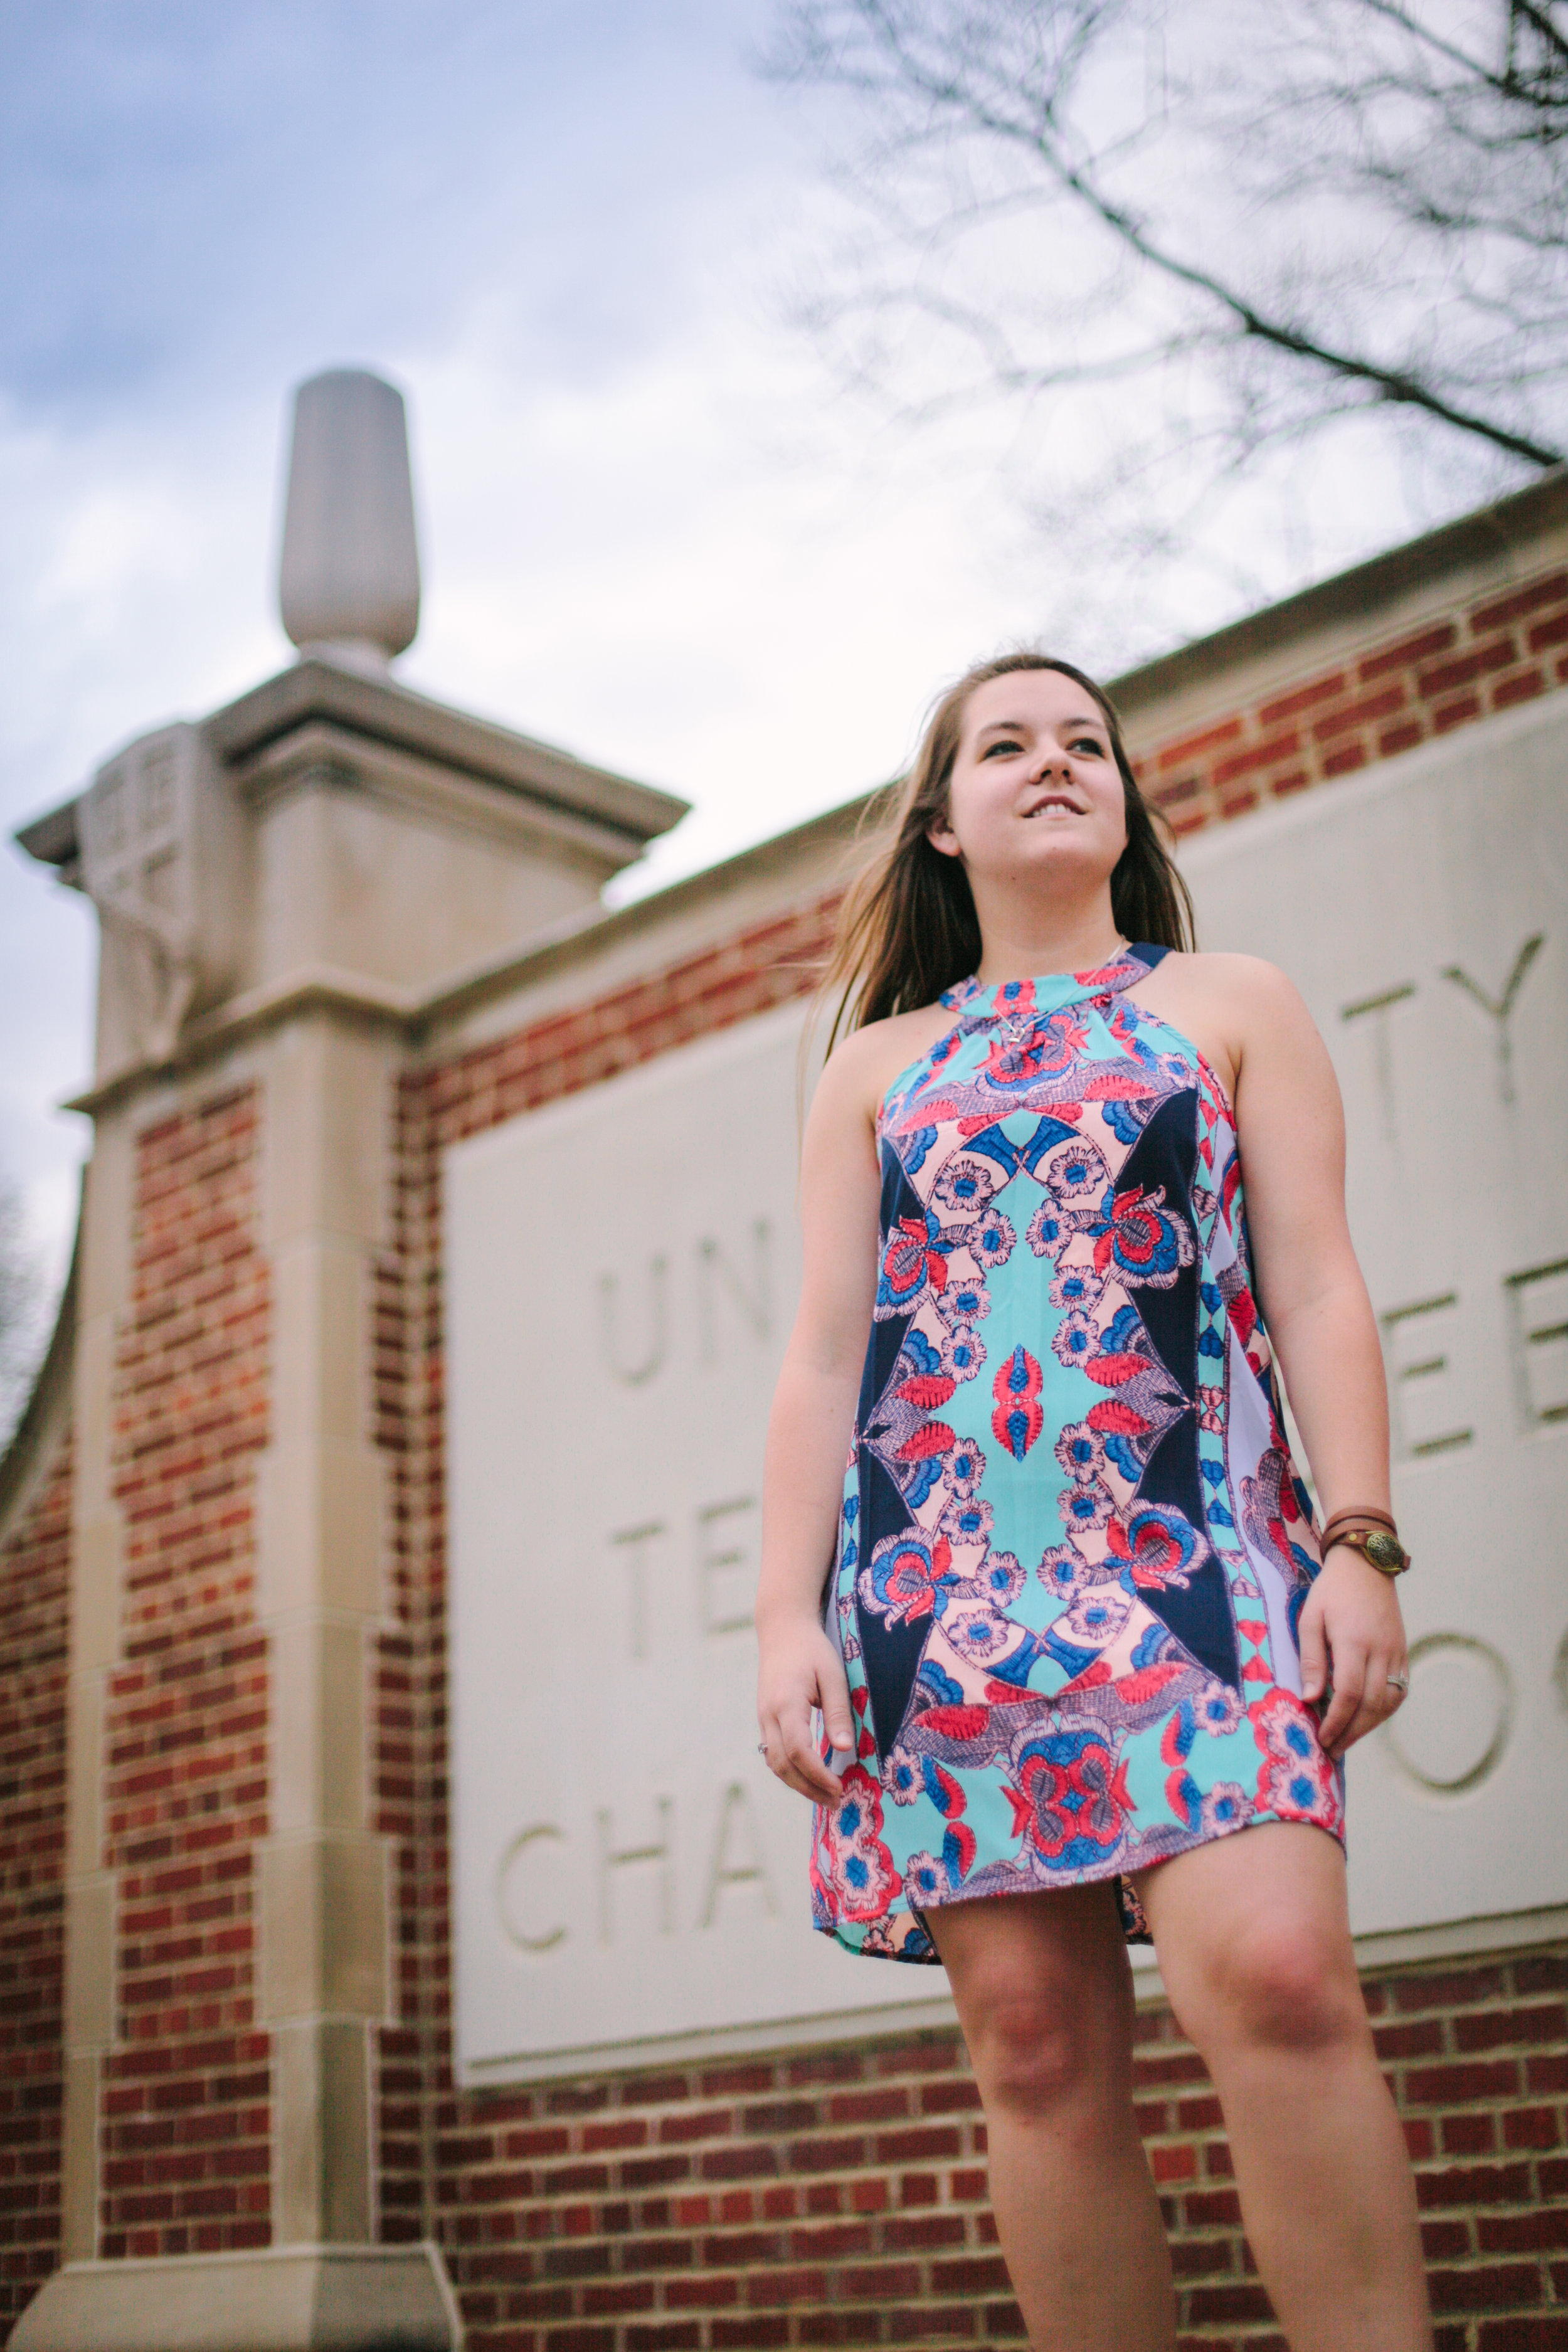 Katie | Univ. Tennessee-Chattanooga, Class of 2017